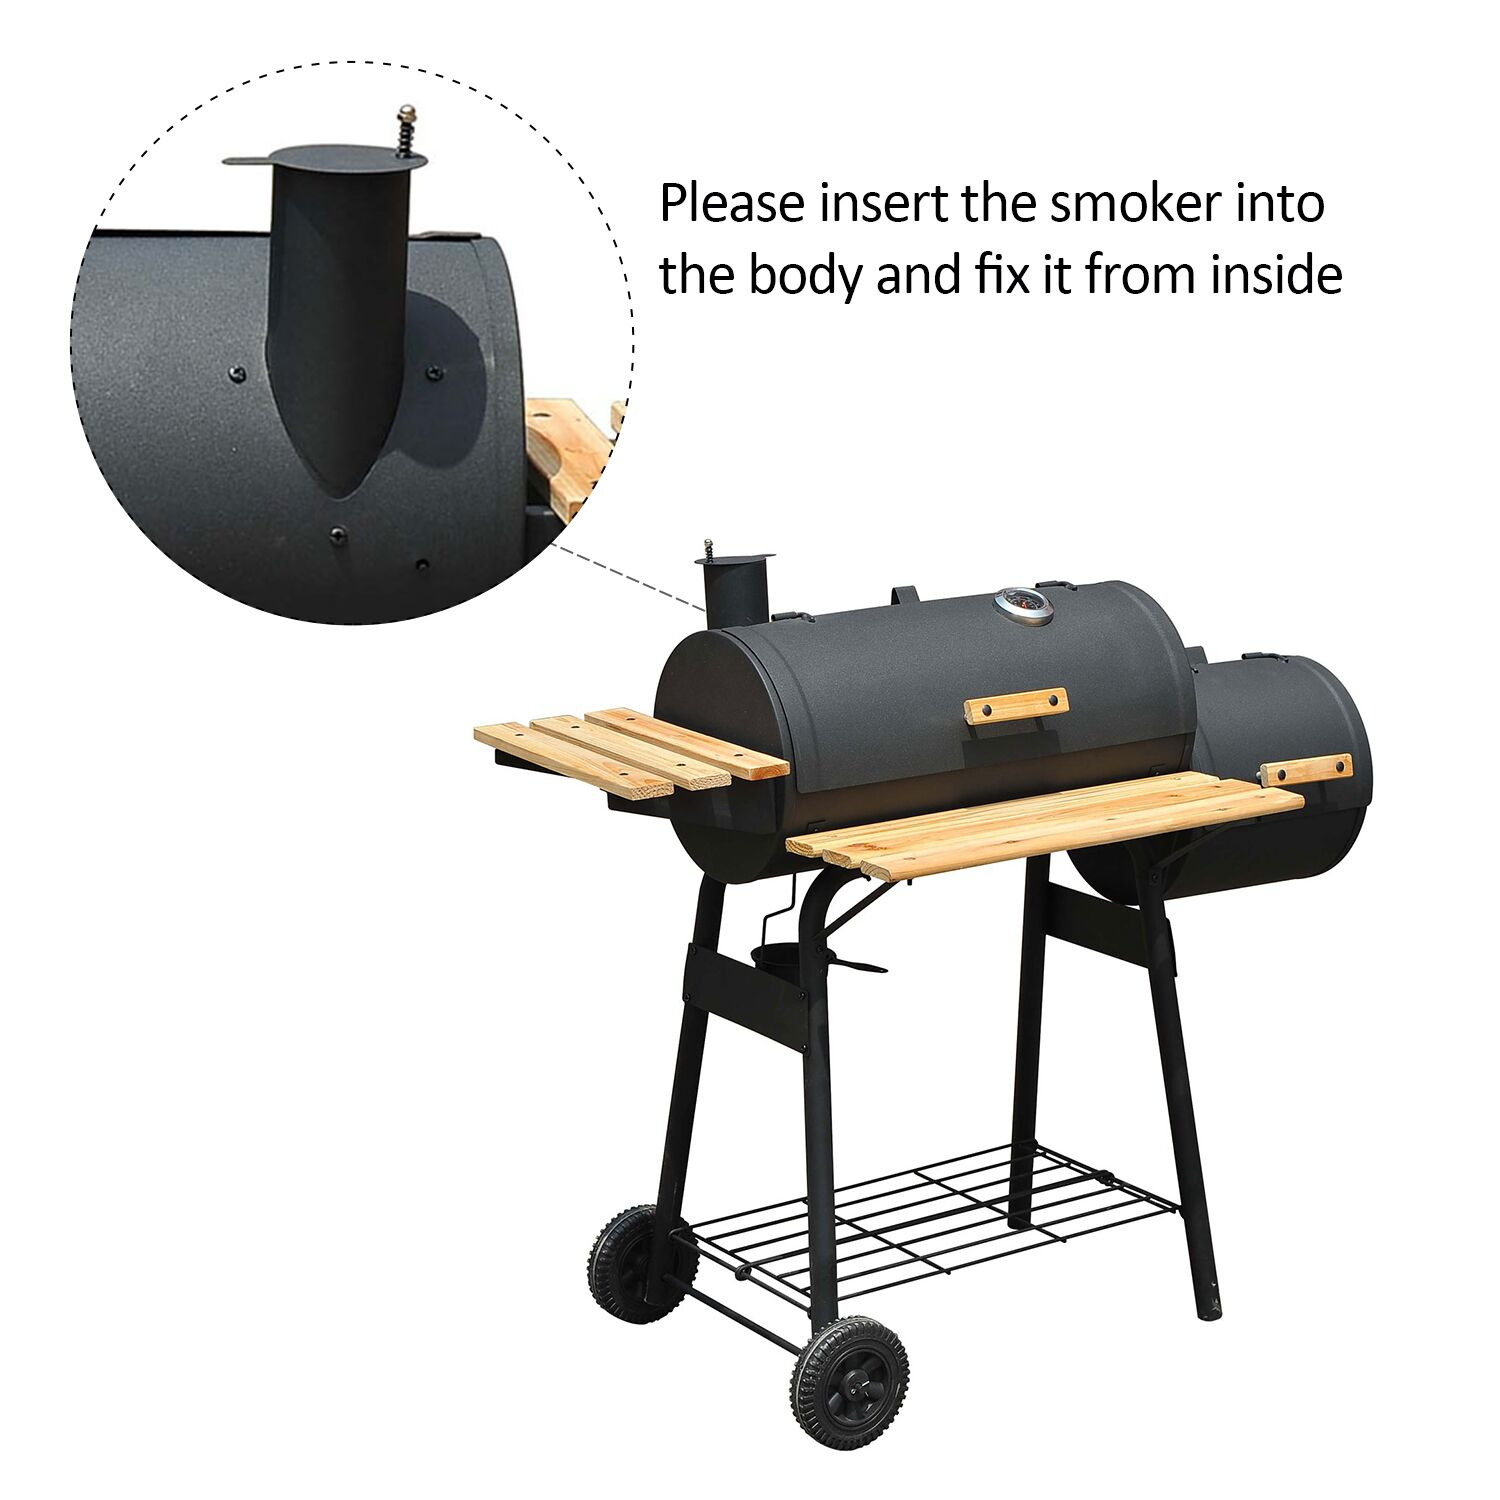 Outsunny 01-0329 Backyard Charcoal BBQ Grill/Offset Smoker Combo ...